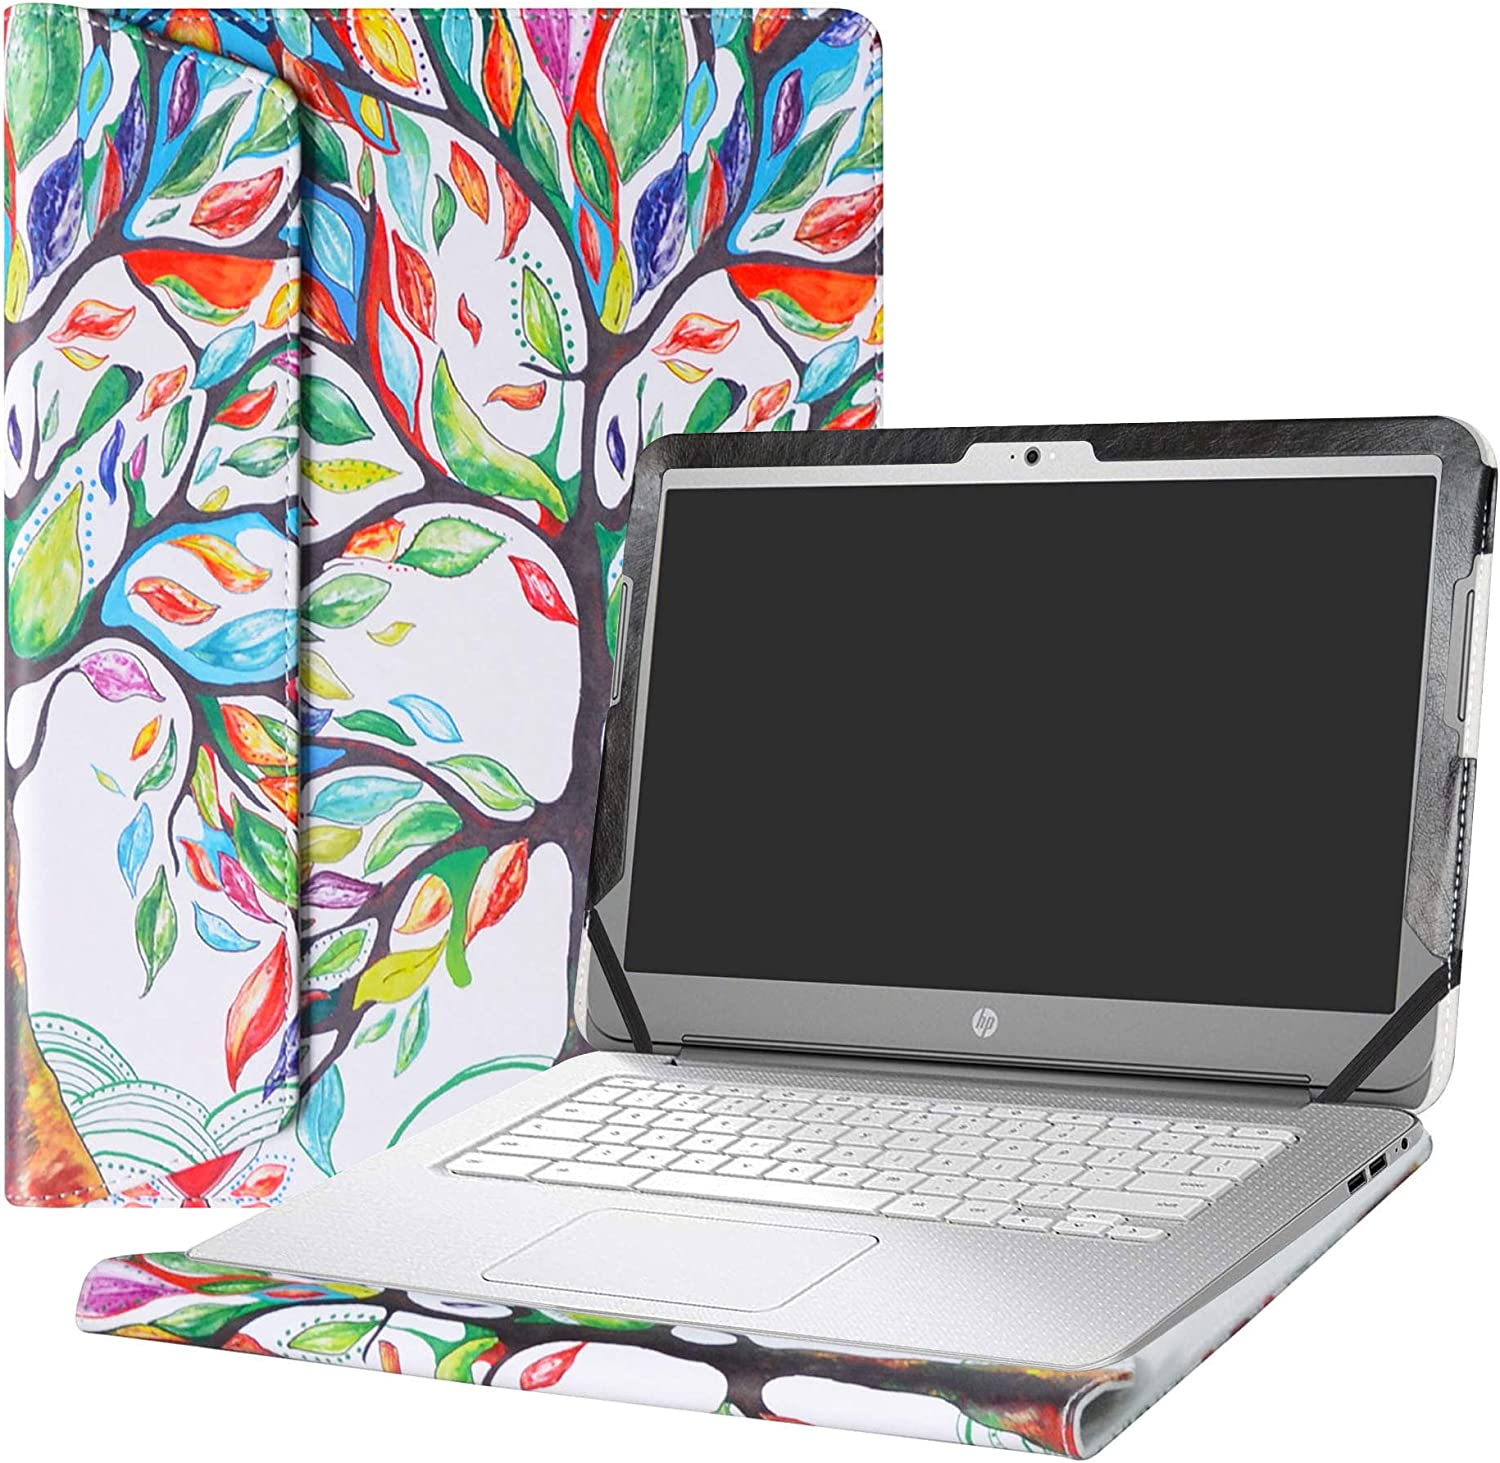 "Alapmk Protective Case Cover for 14"" HP Chromebook 14 14-akXXX 14-XXXX 14-qXXX & HP Chromebook 14 G1 G2 G3 G4 Series Laptop(Warning:Not fit HP Chromebook 14 G5/14-caXXX Series),Love Tree"